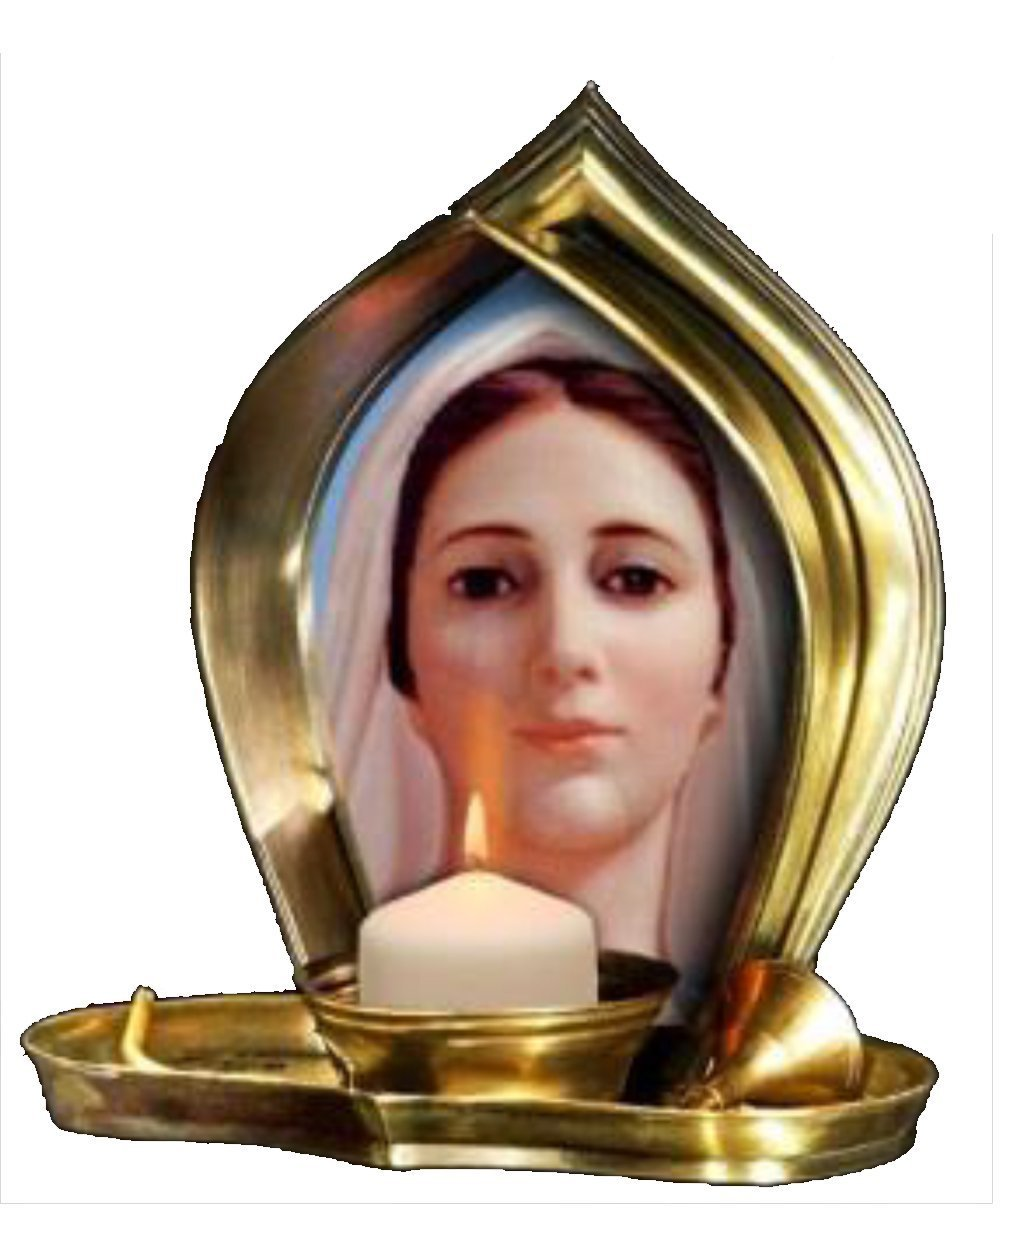 Candle Our Lady of Medjugorje - Religious Christian Light Collectible Candle Divine Light Our Lady of Medjugorje